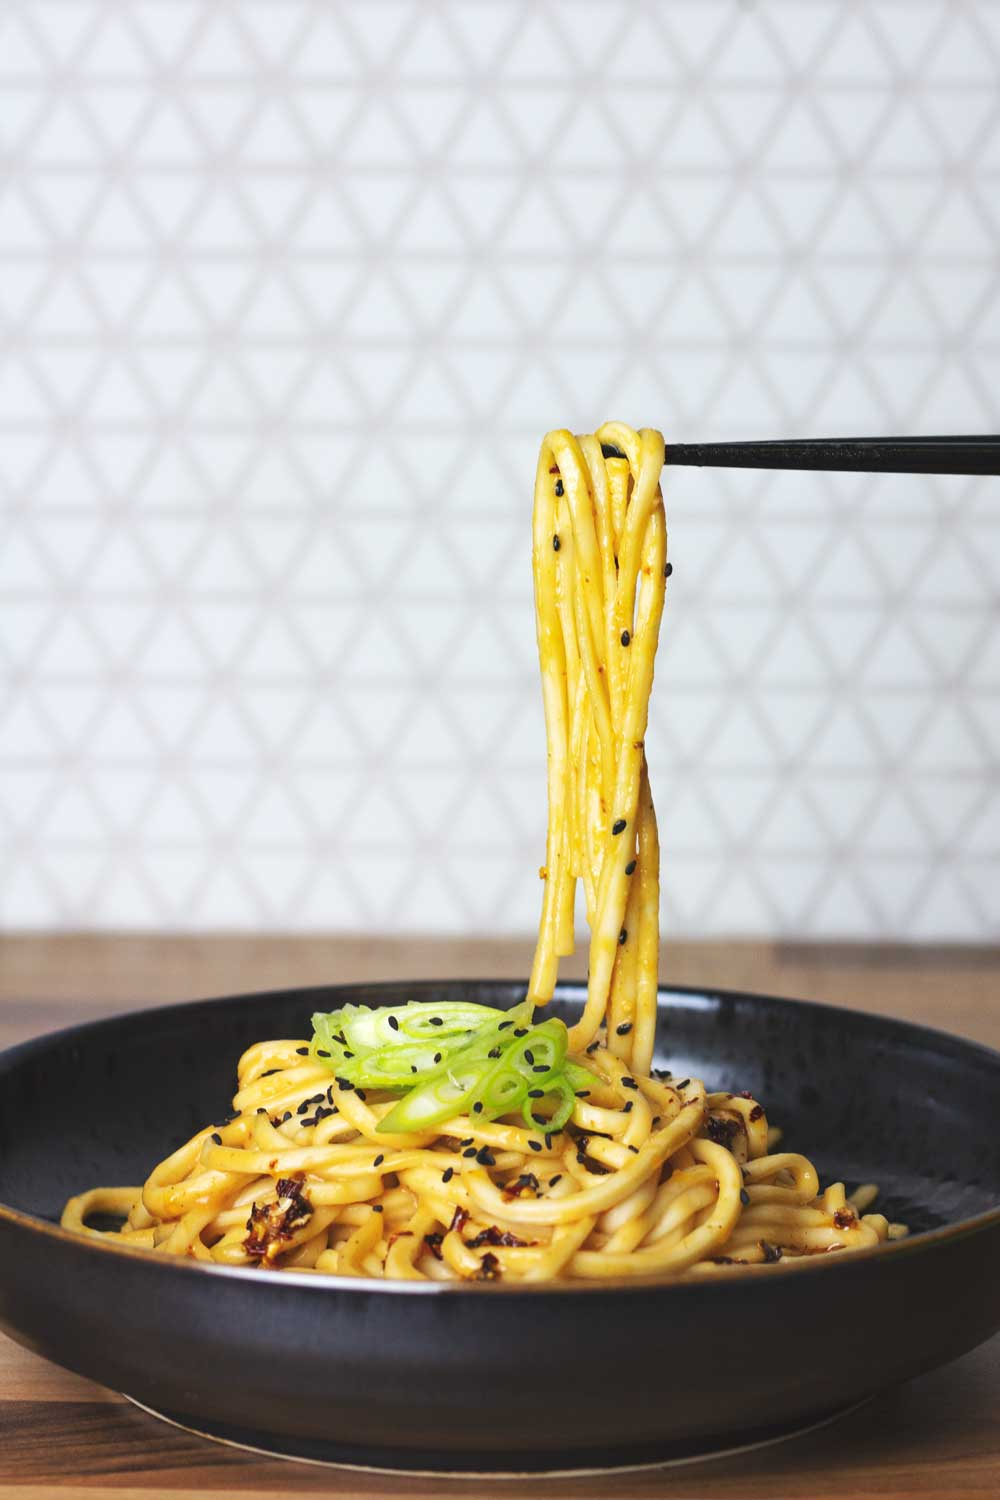 Noodles being picked up by chopsticks